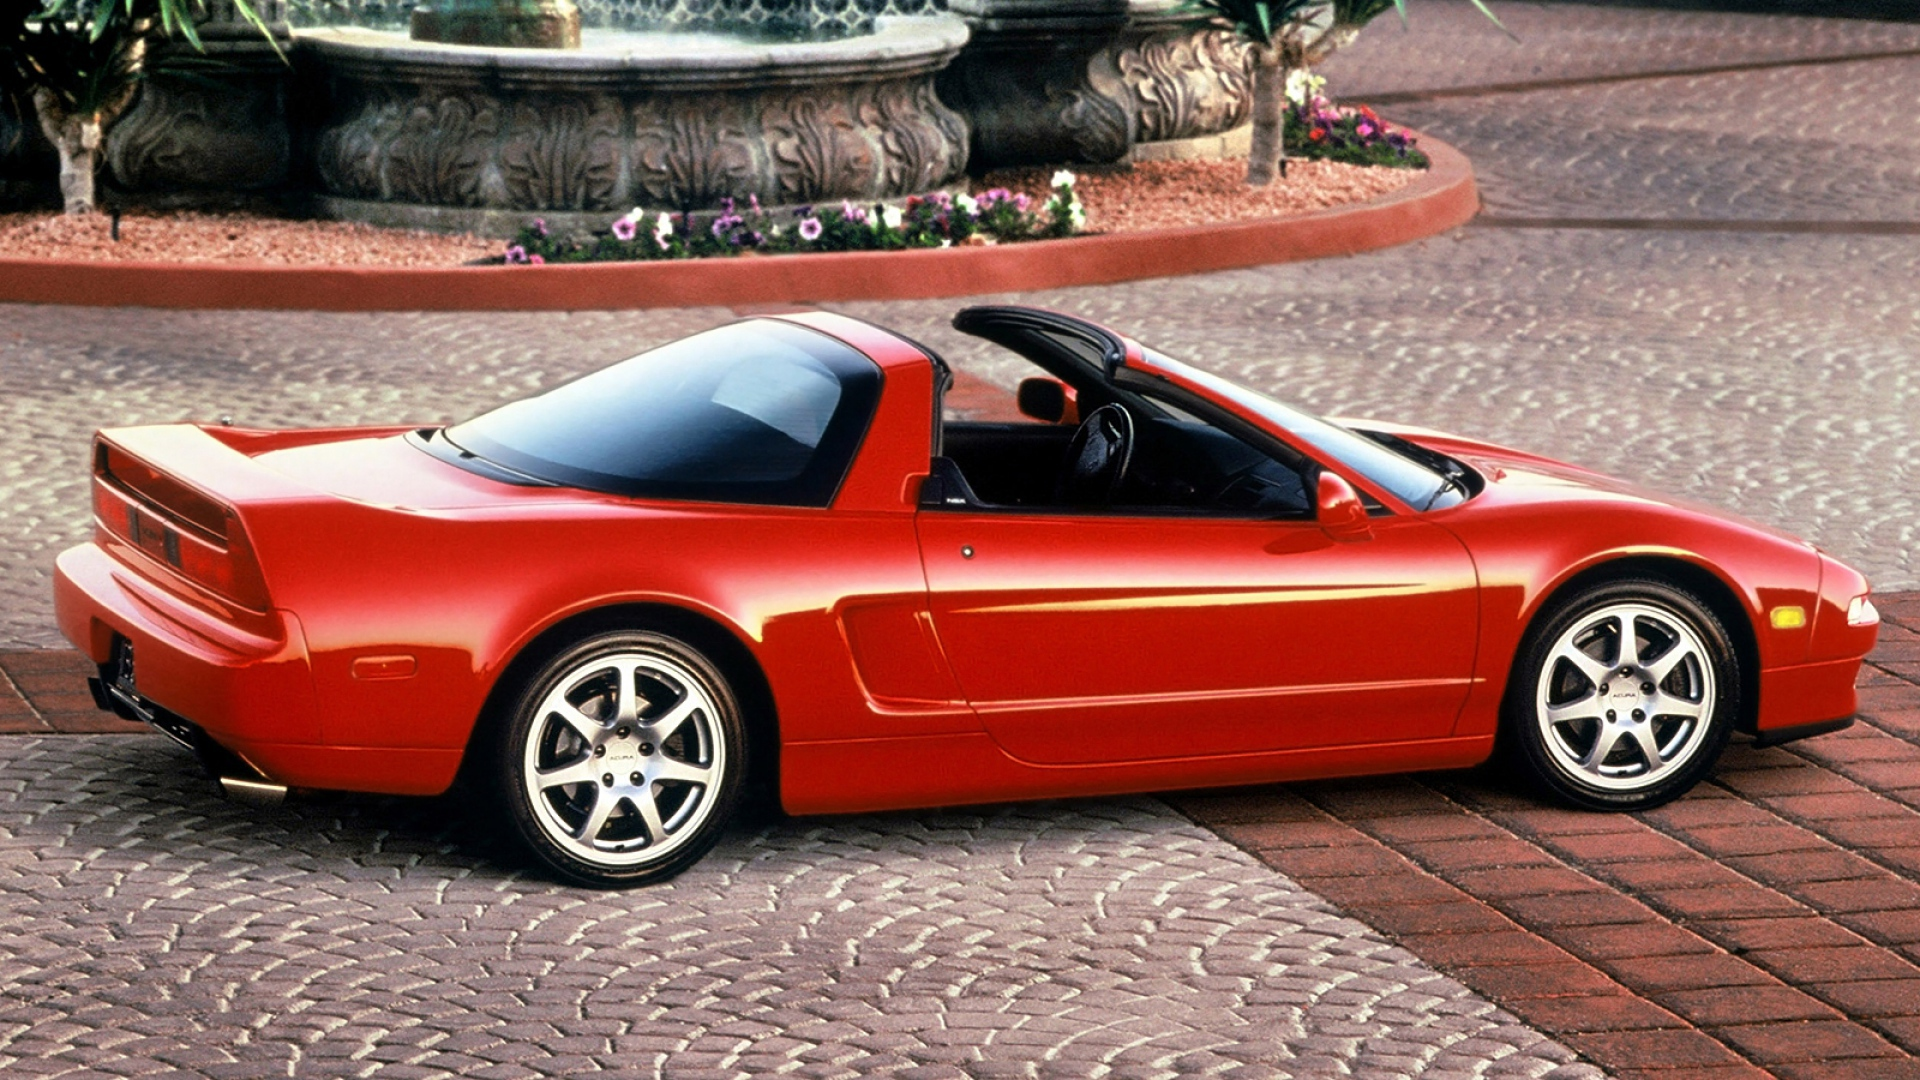 convertibles cars wallpapers images photos pictures backgrounds. Black Bedroom Furniture Sets. Home Design Ideas